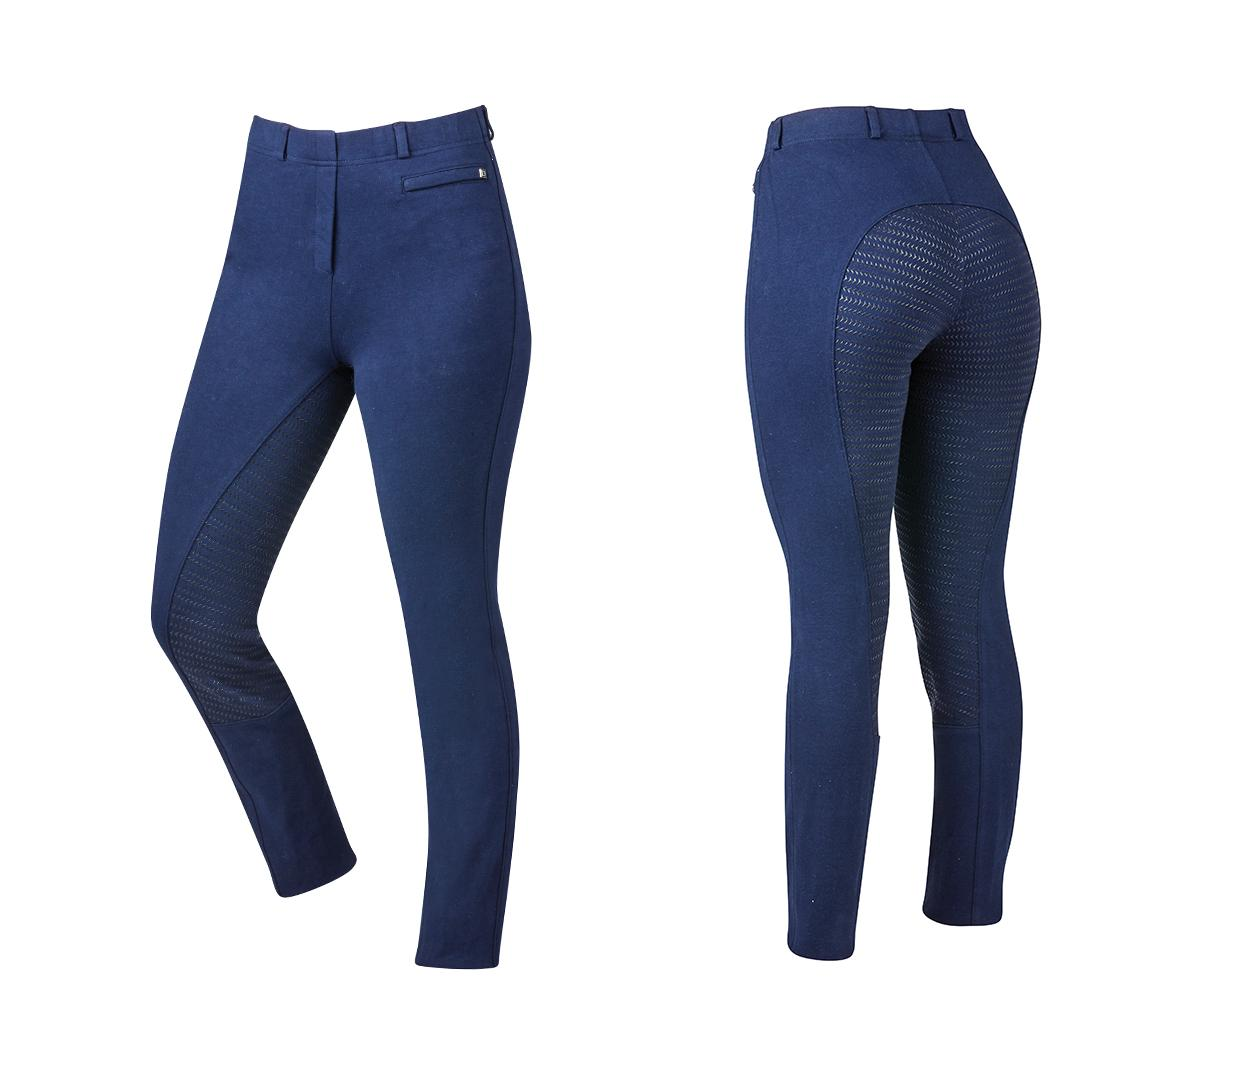 Supa Fit Pull On Gel Full Seat Year Round Jods navy